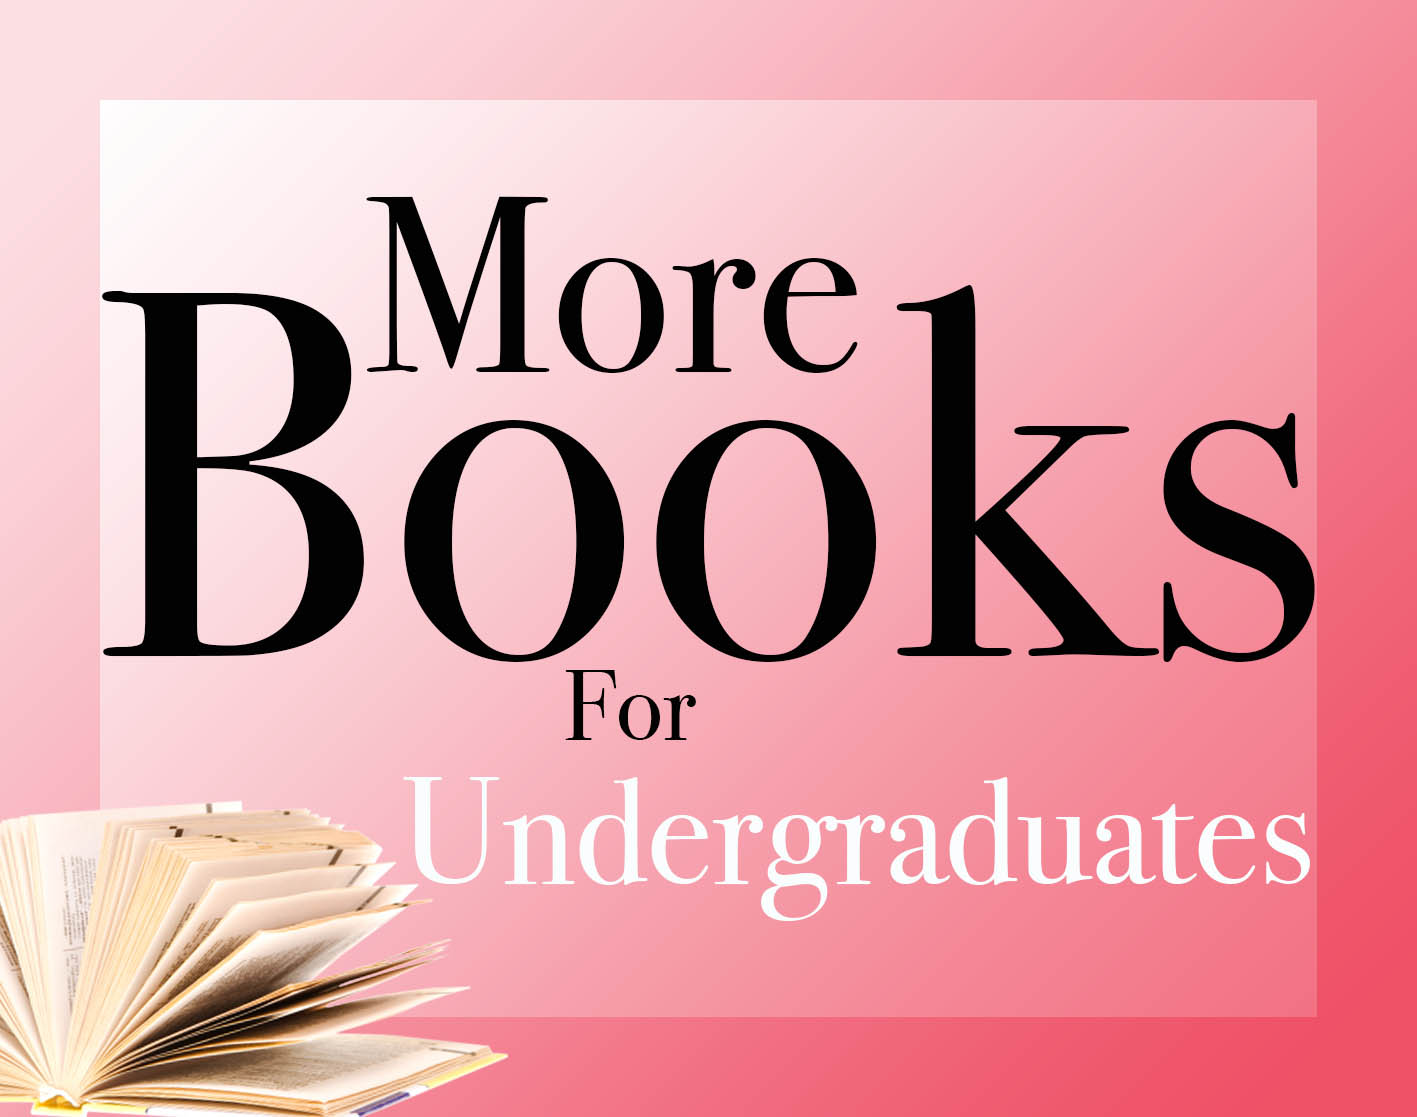 More books for undergraduates logo